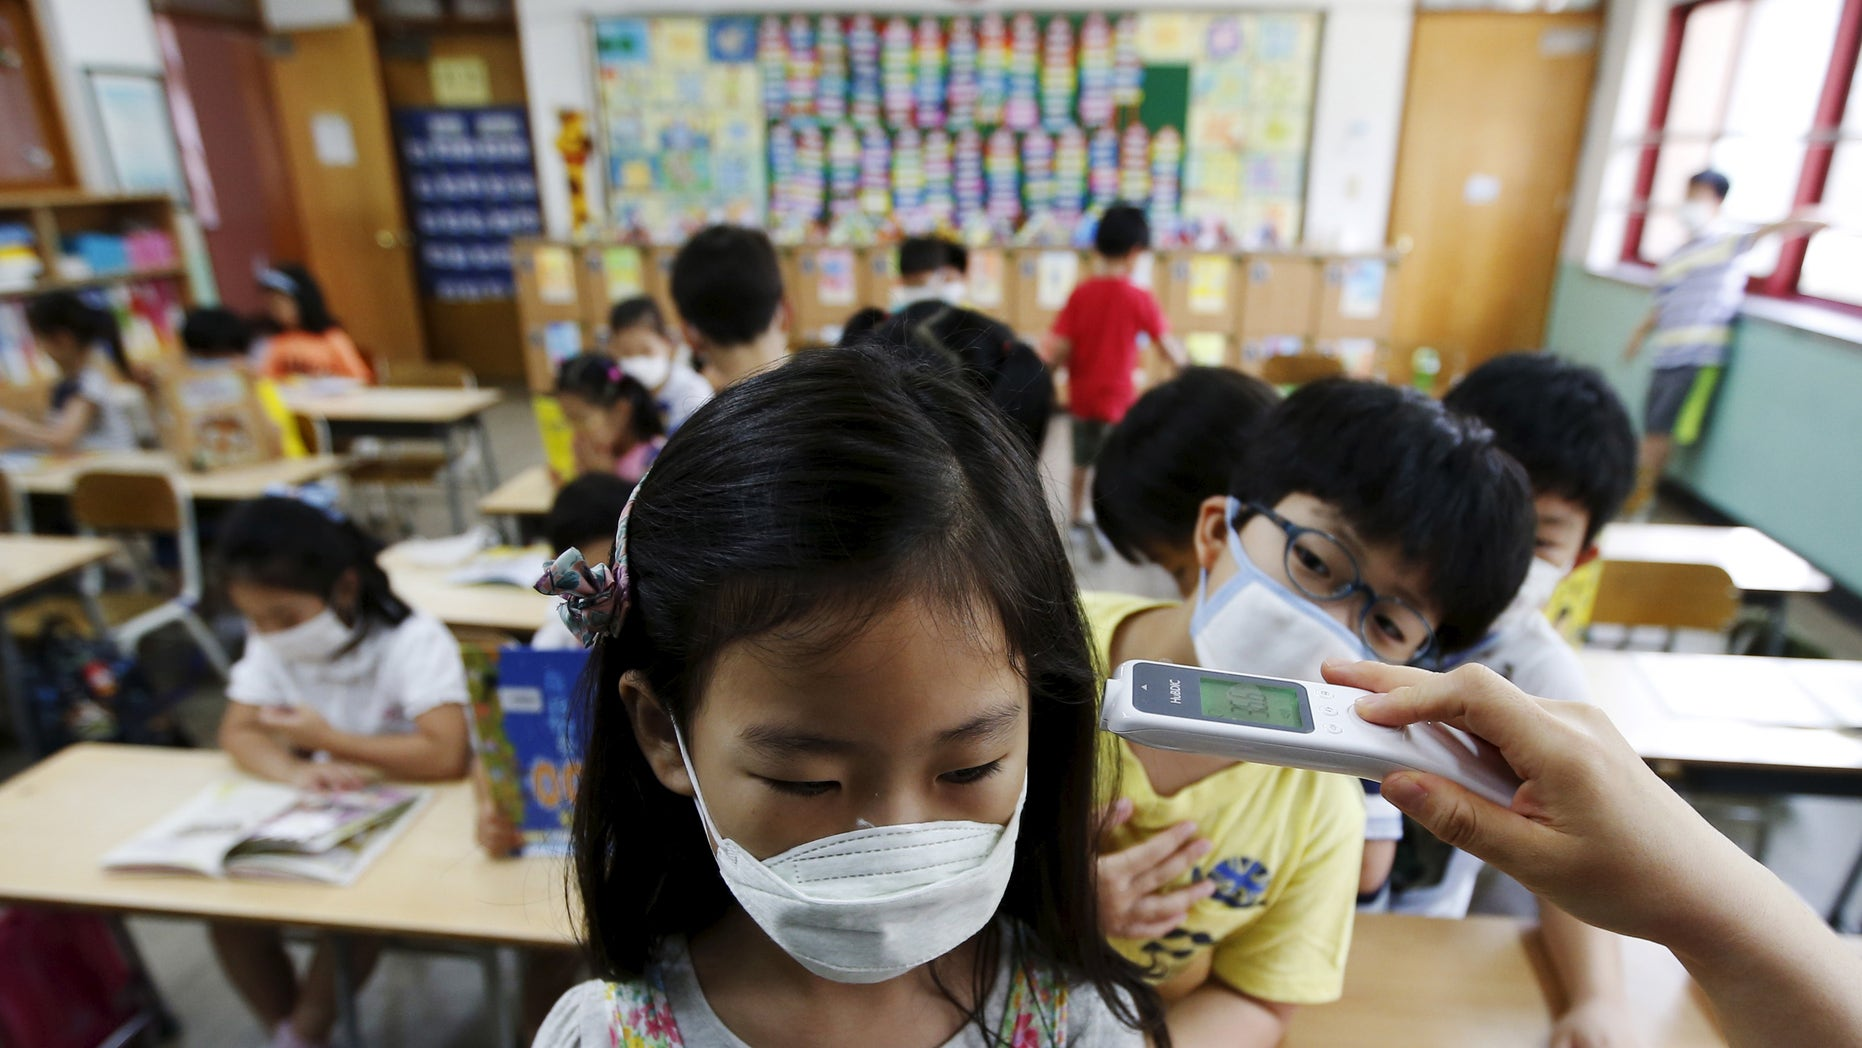 An elementary school student wearing a mask to prevent contracting Middle East Respiratory Syndrome (MERS), receives a temperature check at an elementary school in Seoul, South Korea, June 9, 2015. REUTERS/Kim Hong-Ji